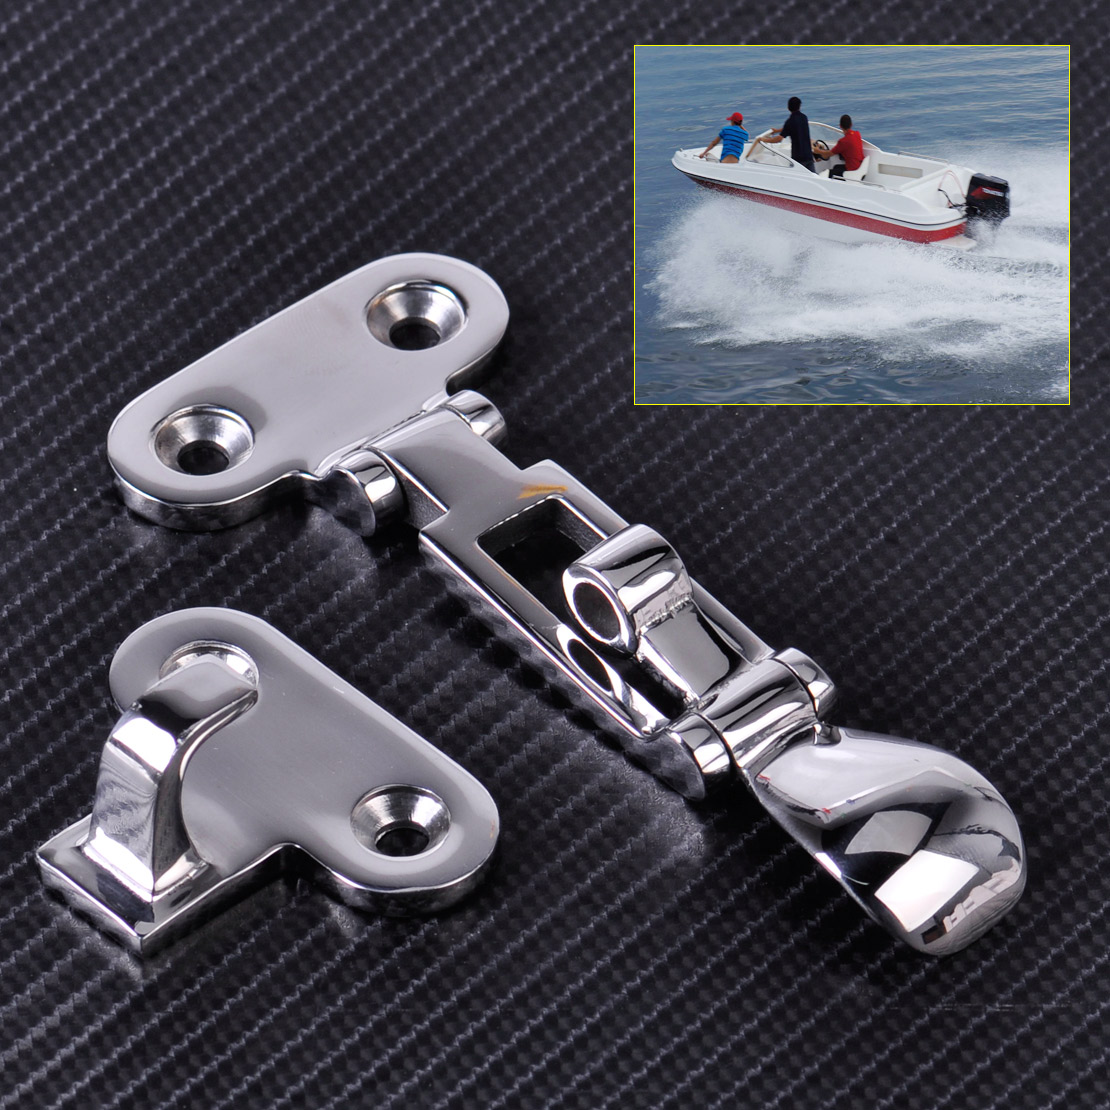 CITALL New Stainless Steel for Boat Marine Hatch Locker Anti-Rattle Latch Fastener Clamp